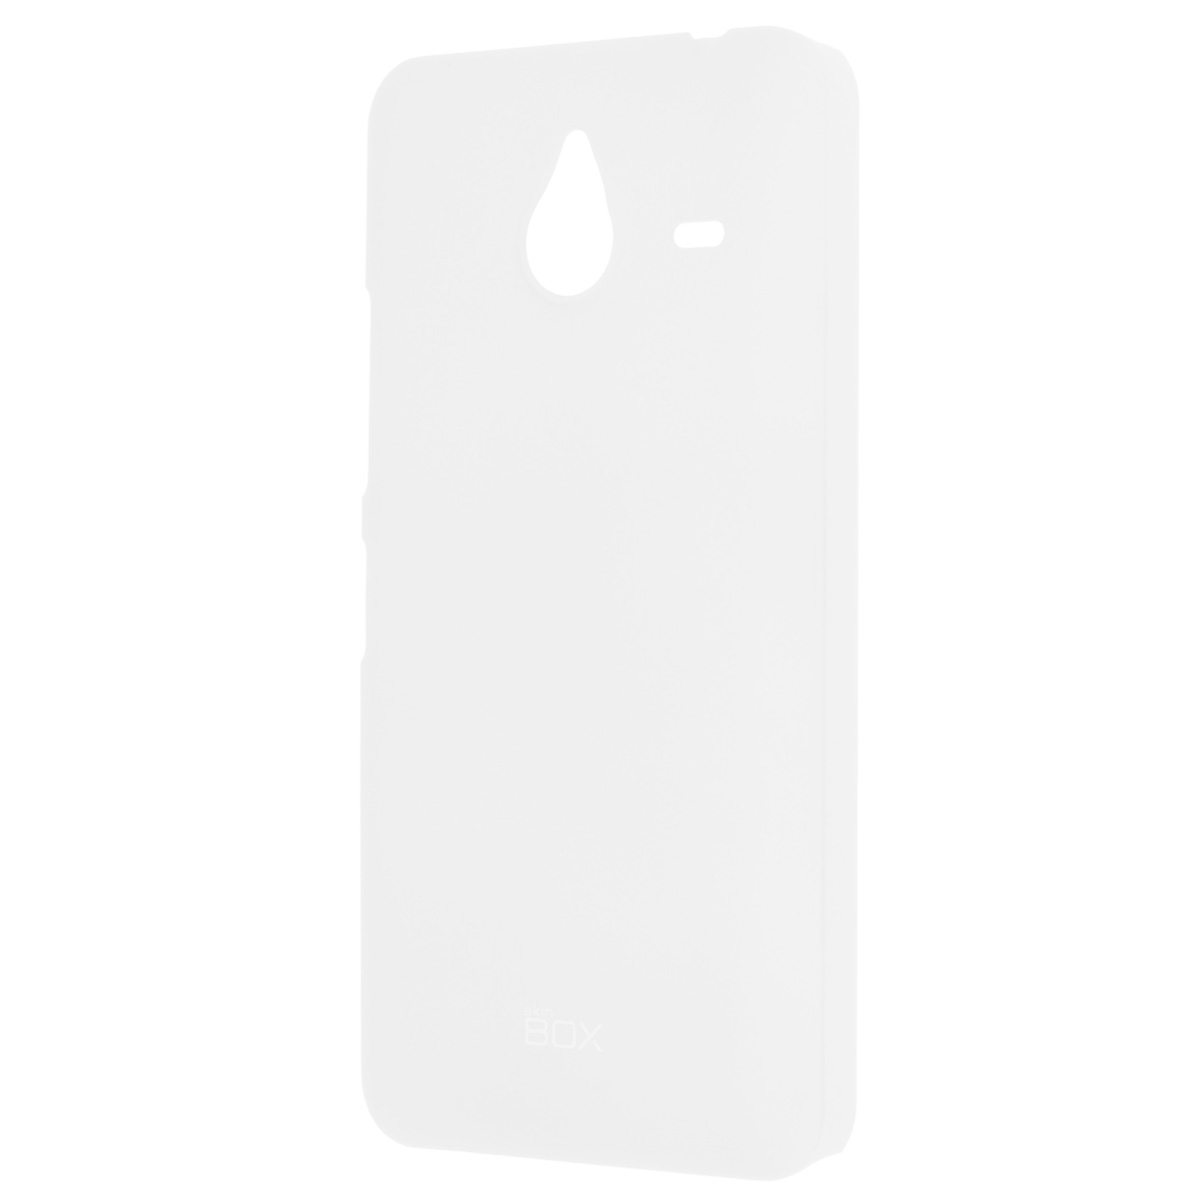 Skinbox Shield 4People чехол для Microsoft Lumia 640XL, White malata a18 1 3 super long standby mini mobile phone deep gray